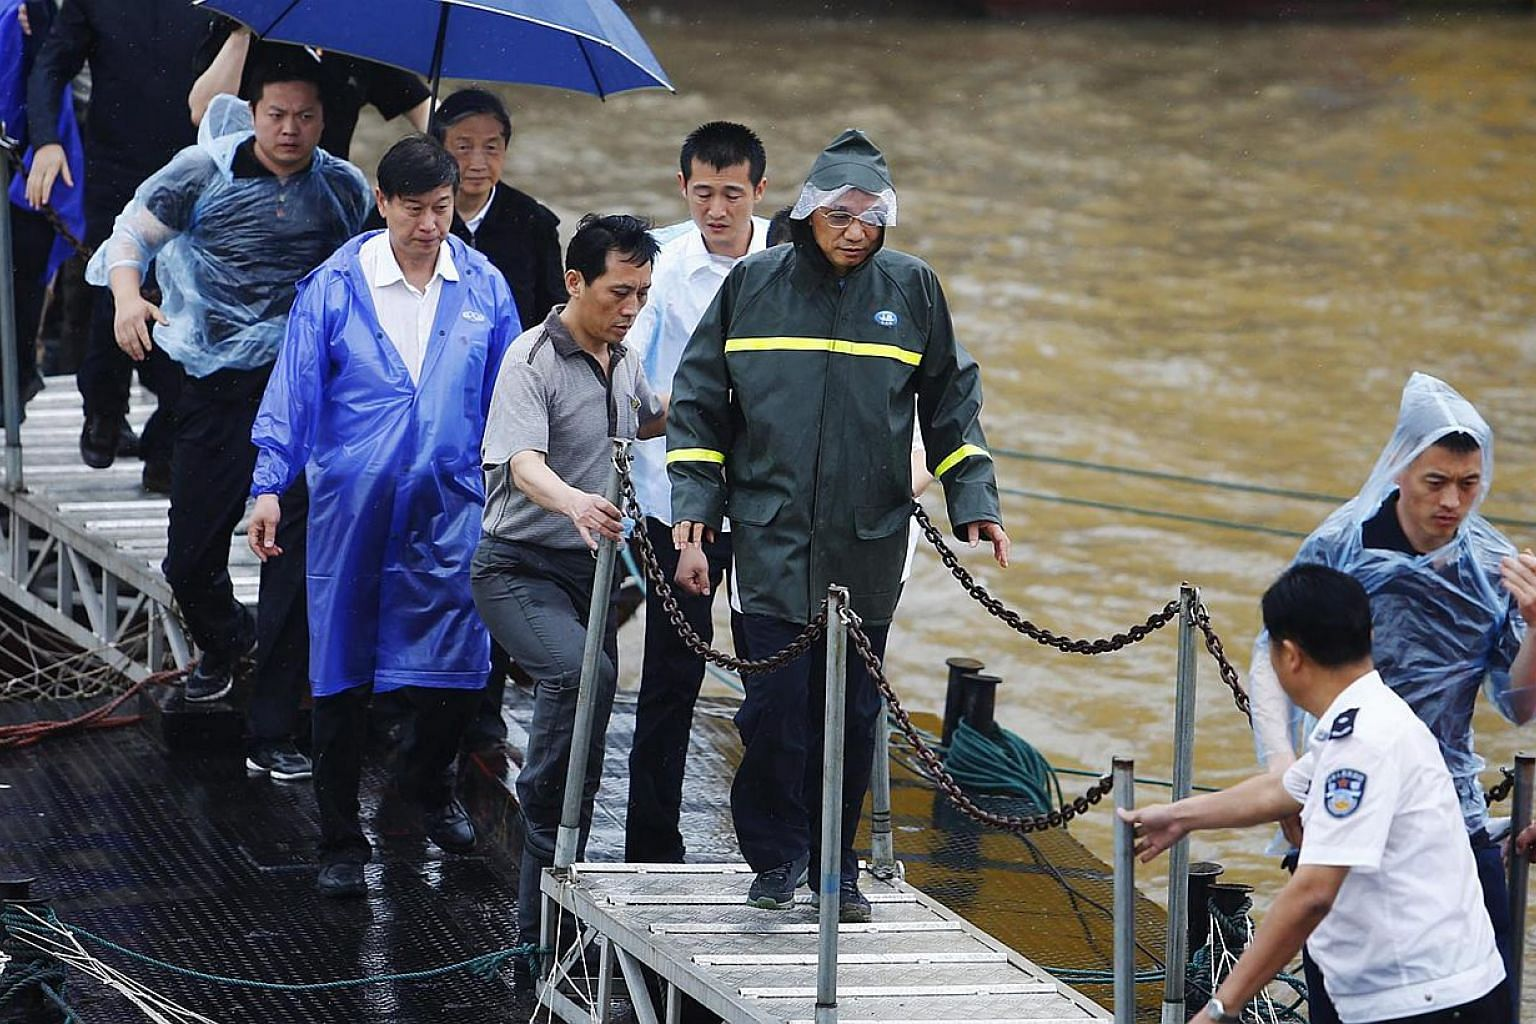 Chinese Premier Li Keqiang (centre) inspects the rescue efforts of the capsized tourist ship in the Yangtze River in Jianli county, Hubei province, China on June 3, 2015. -- PHOTO: EPA